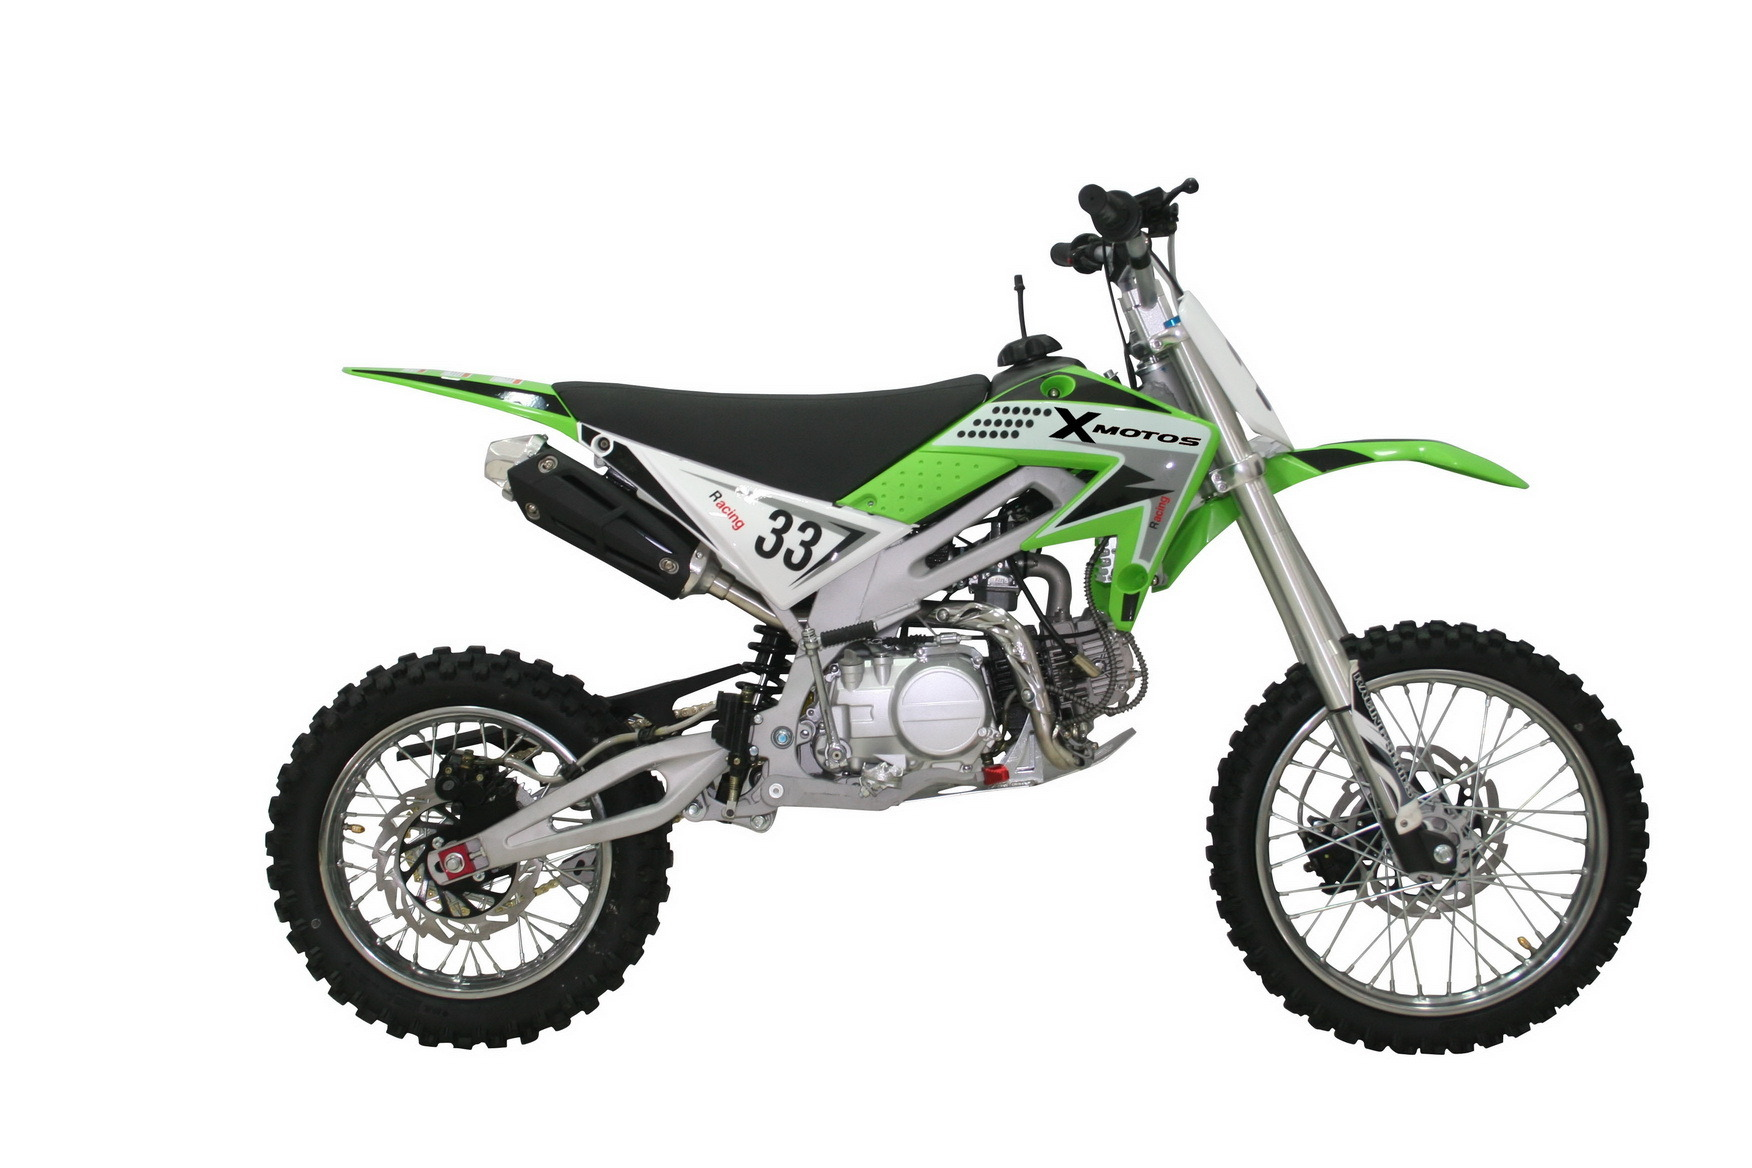 china dirt bike xtr125 xb 33 125cc china dirt bike. Black Bedroom Furniture Sets. Home Design Ideas